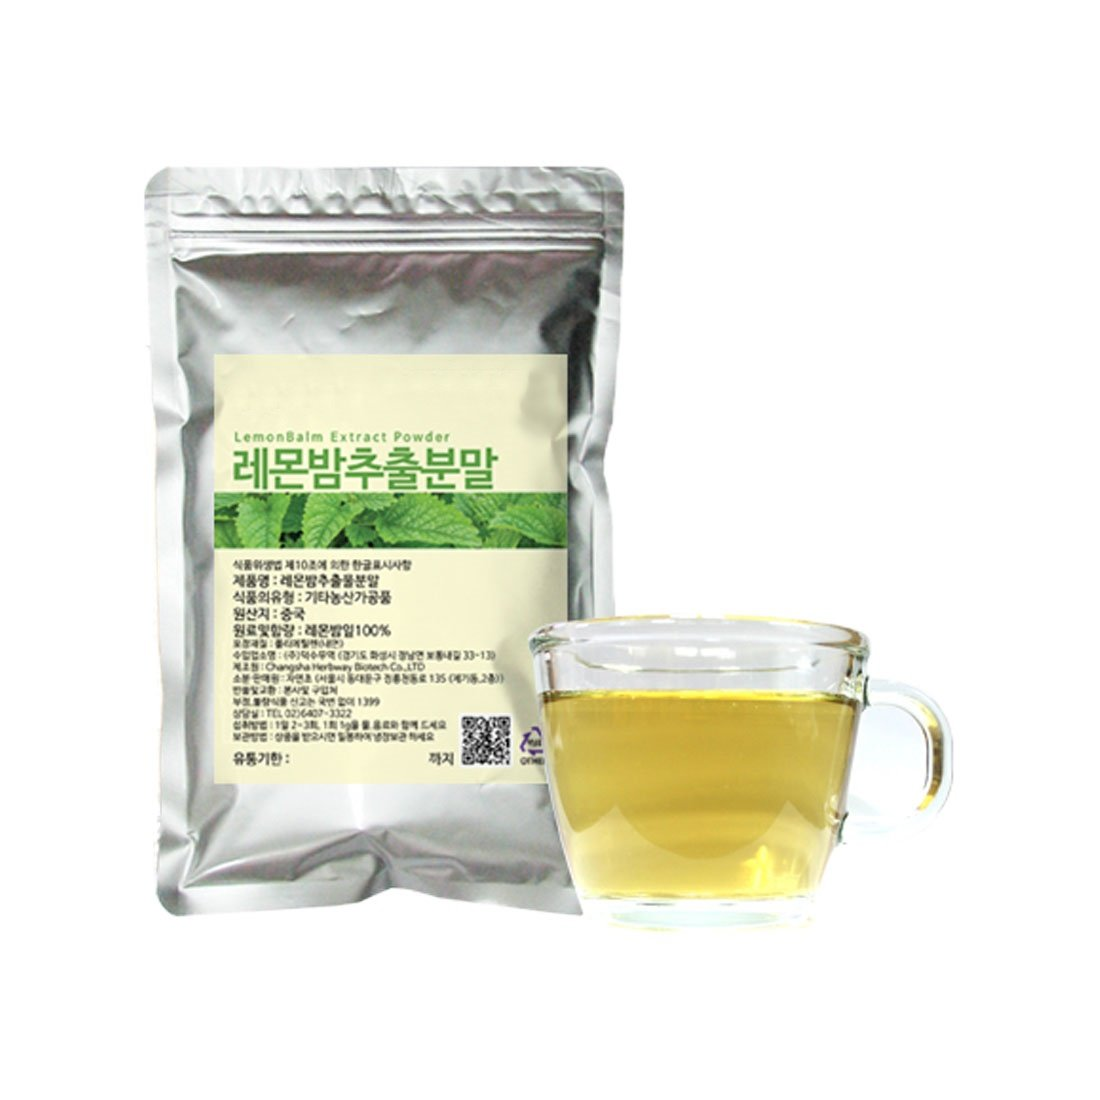 Lemon Balm Extract Powder Natural 100% Health Diet Tea Vitamin C Insomnia Digestion Reduces Anxiety J-Herb (400g)